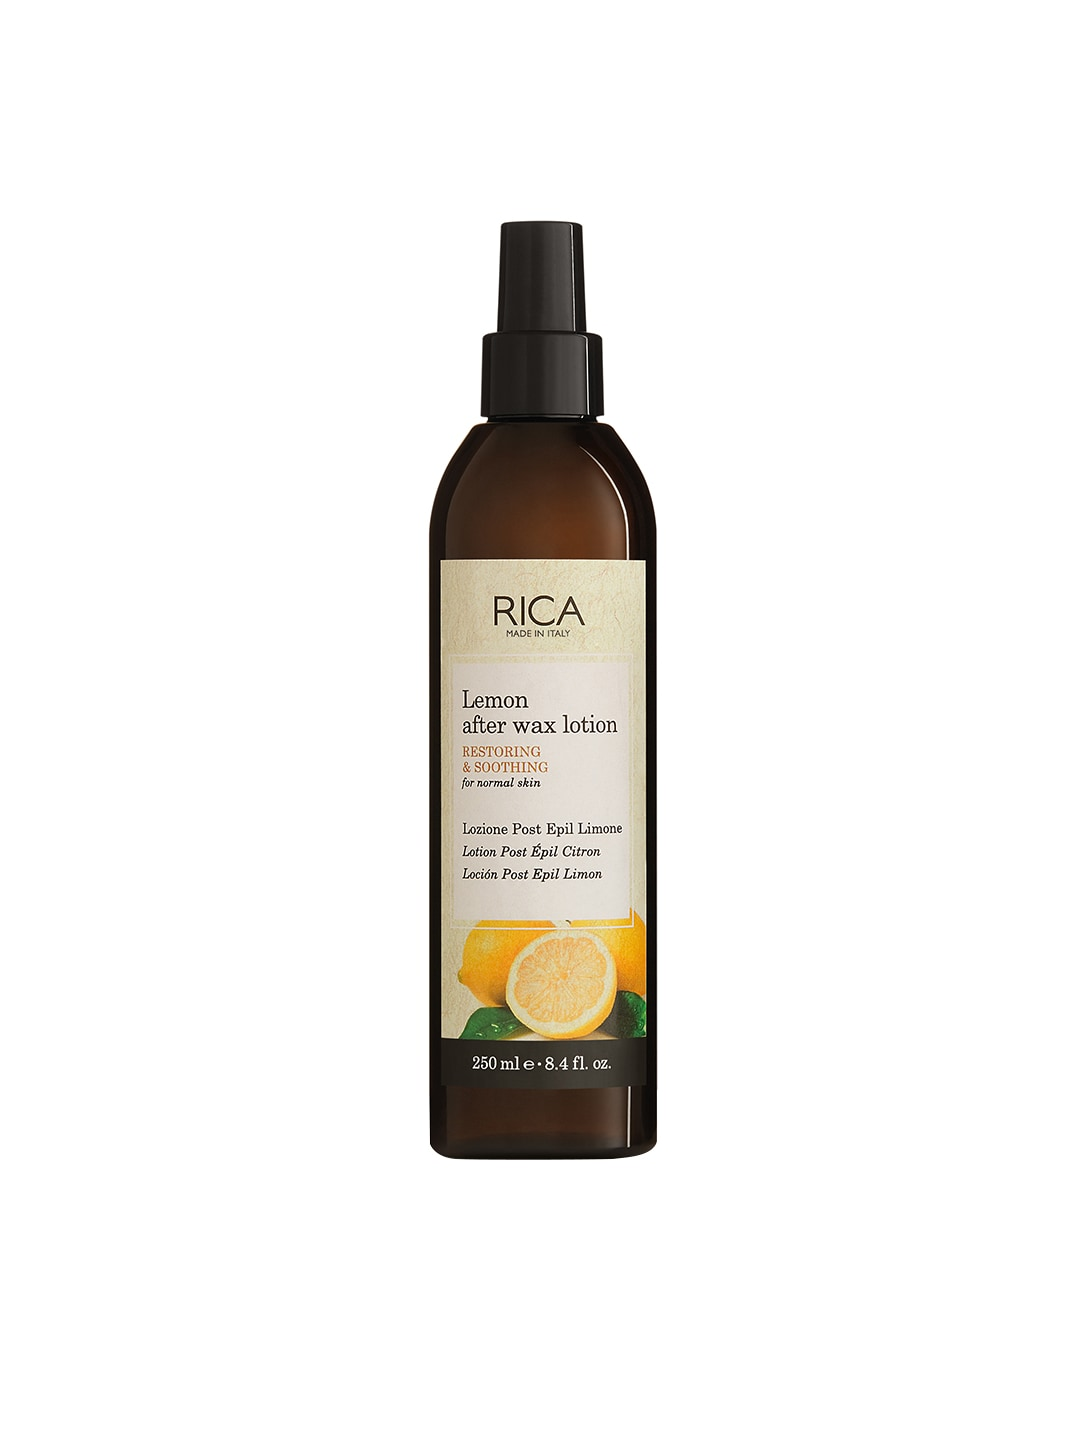 RICA Unisex Lemon After Wax Lotion image